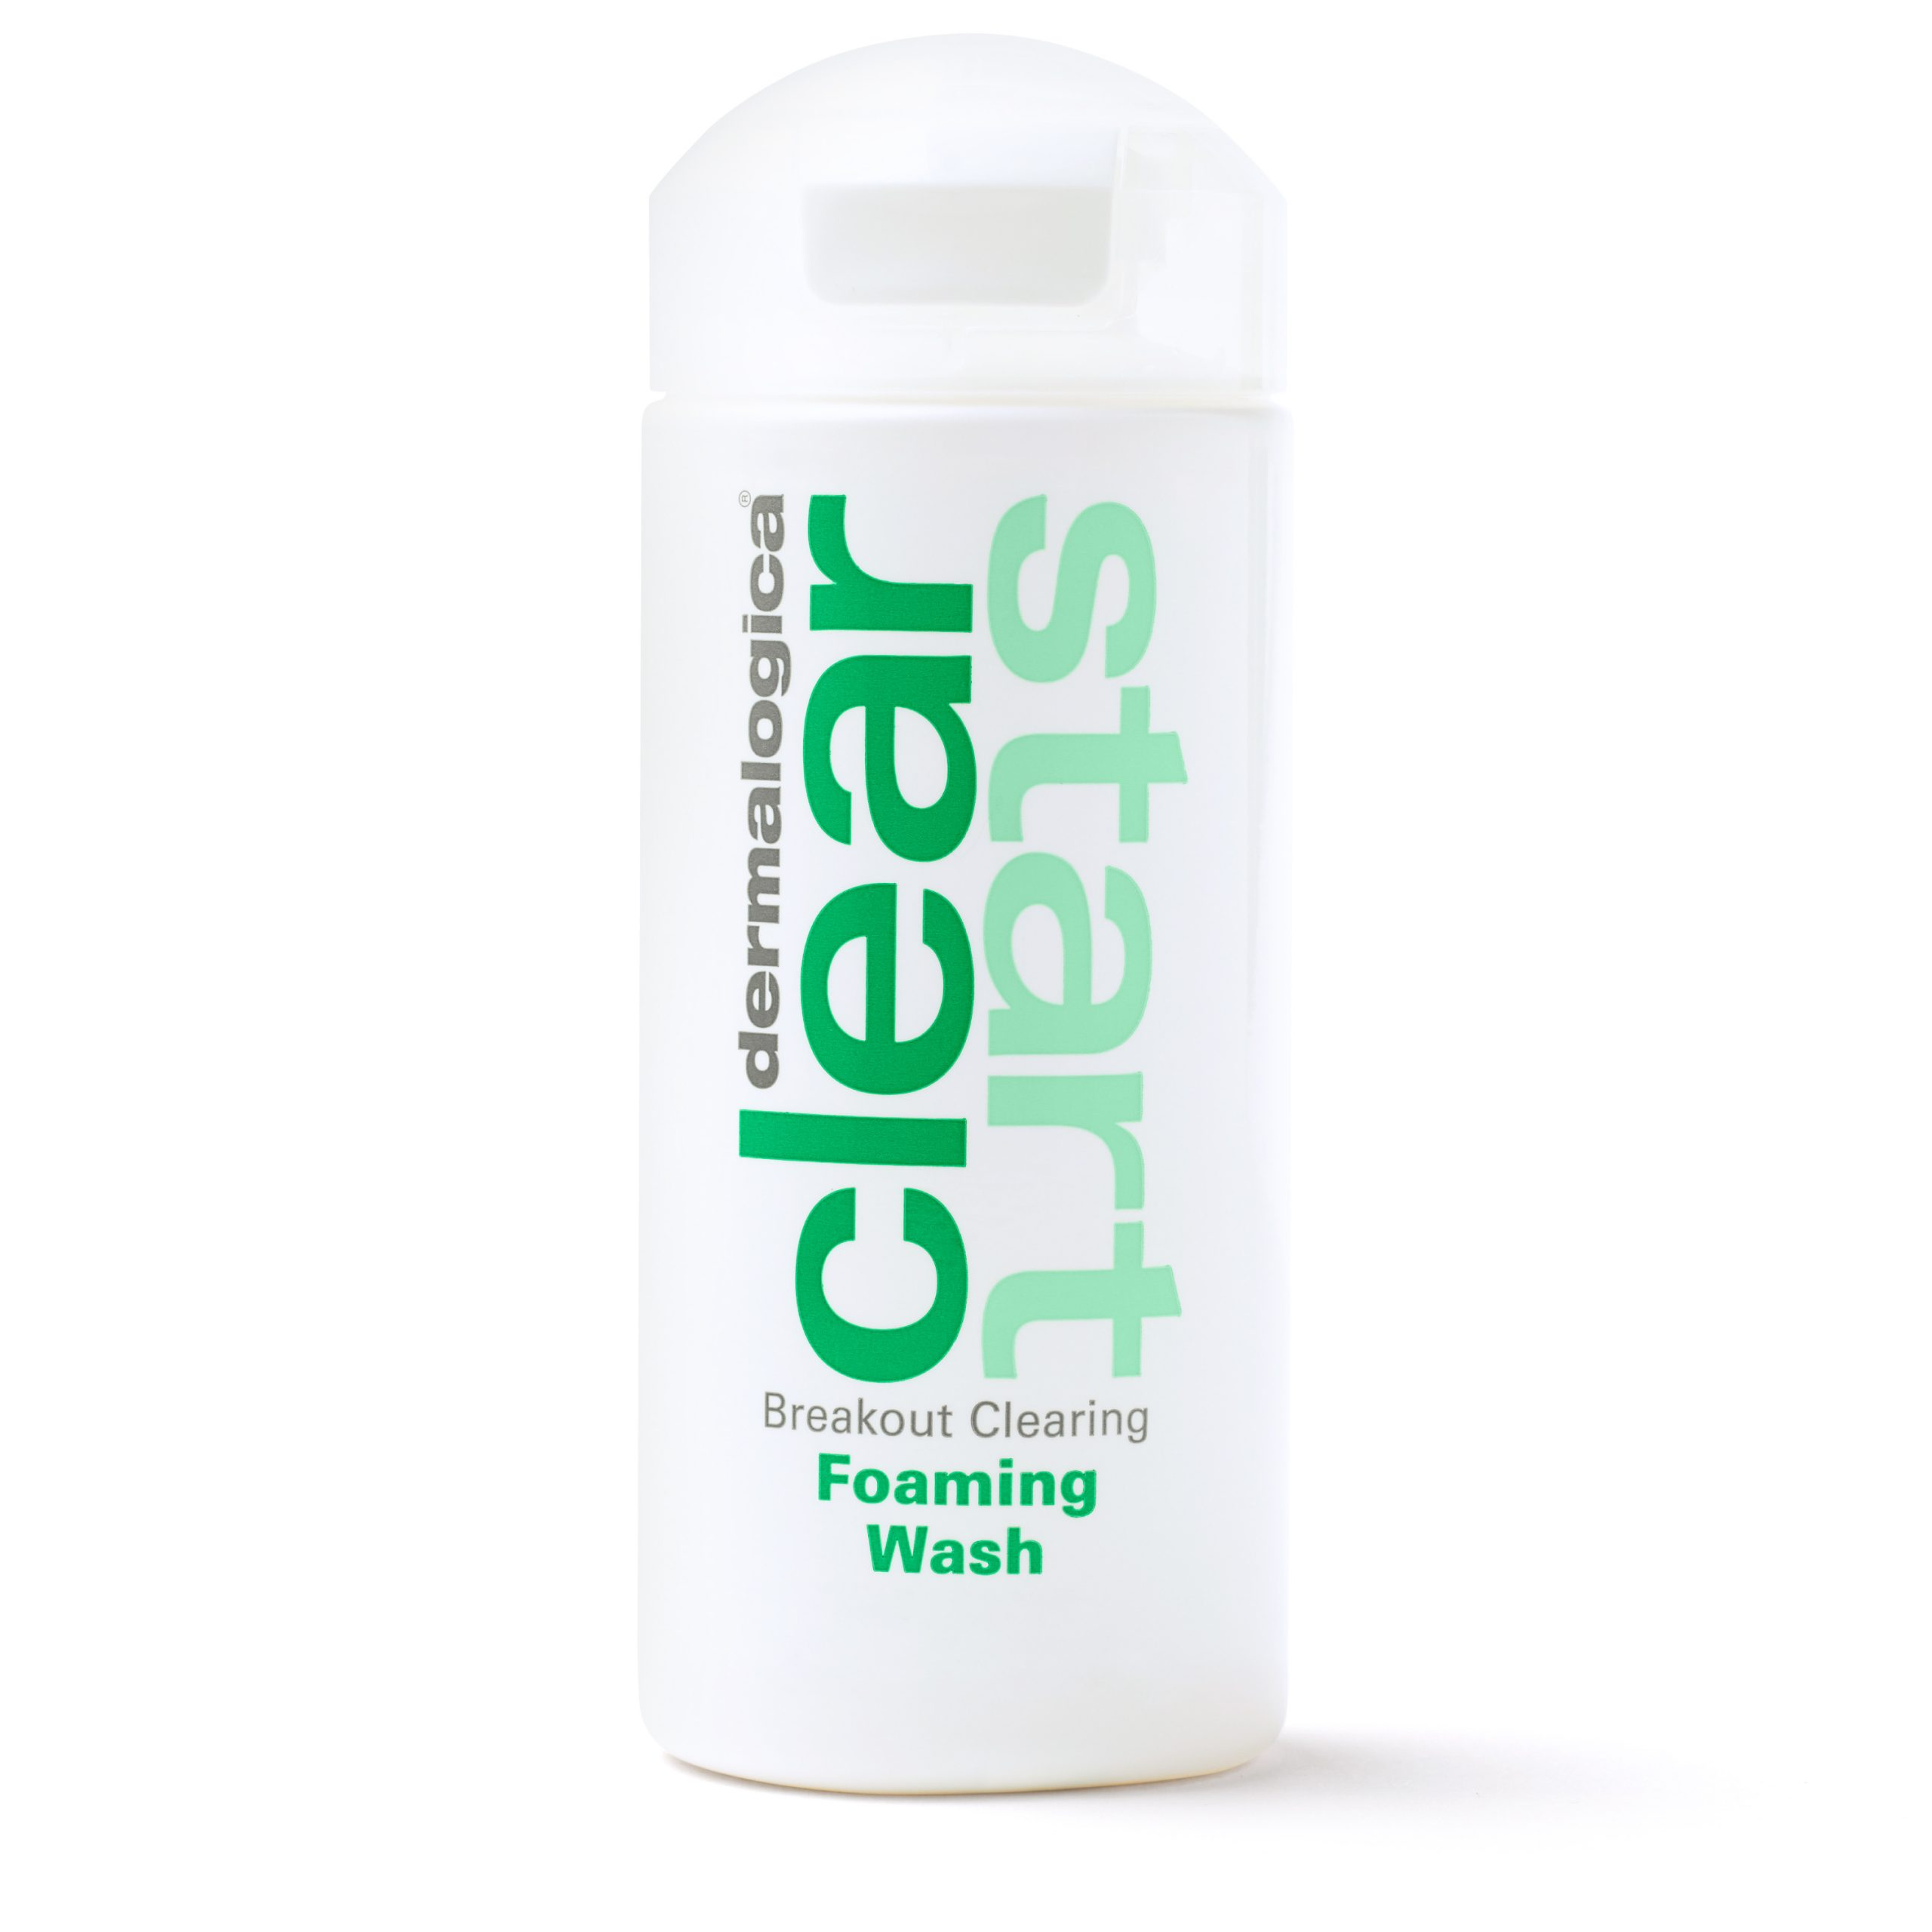 Breakout clearing foaming wash 177ml